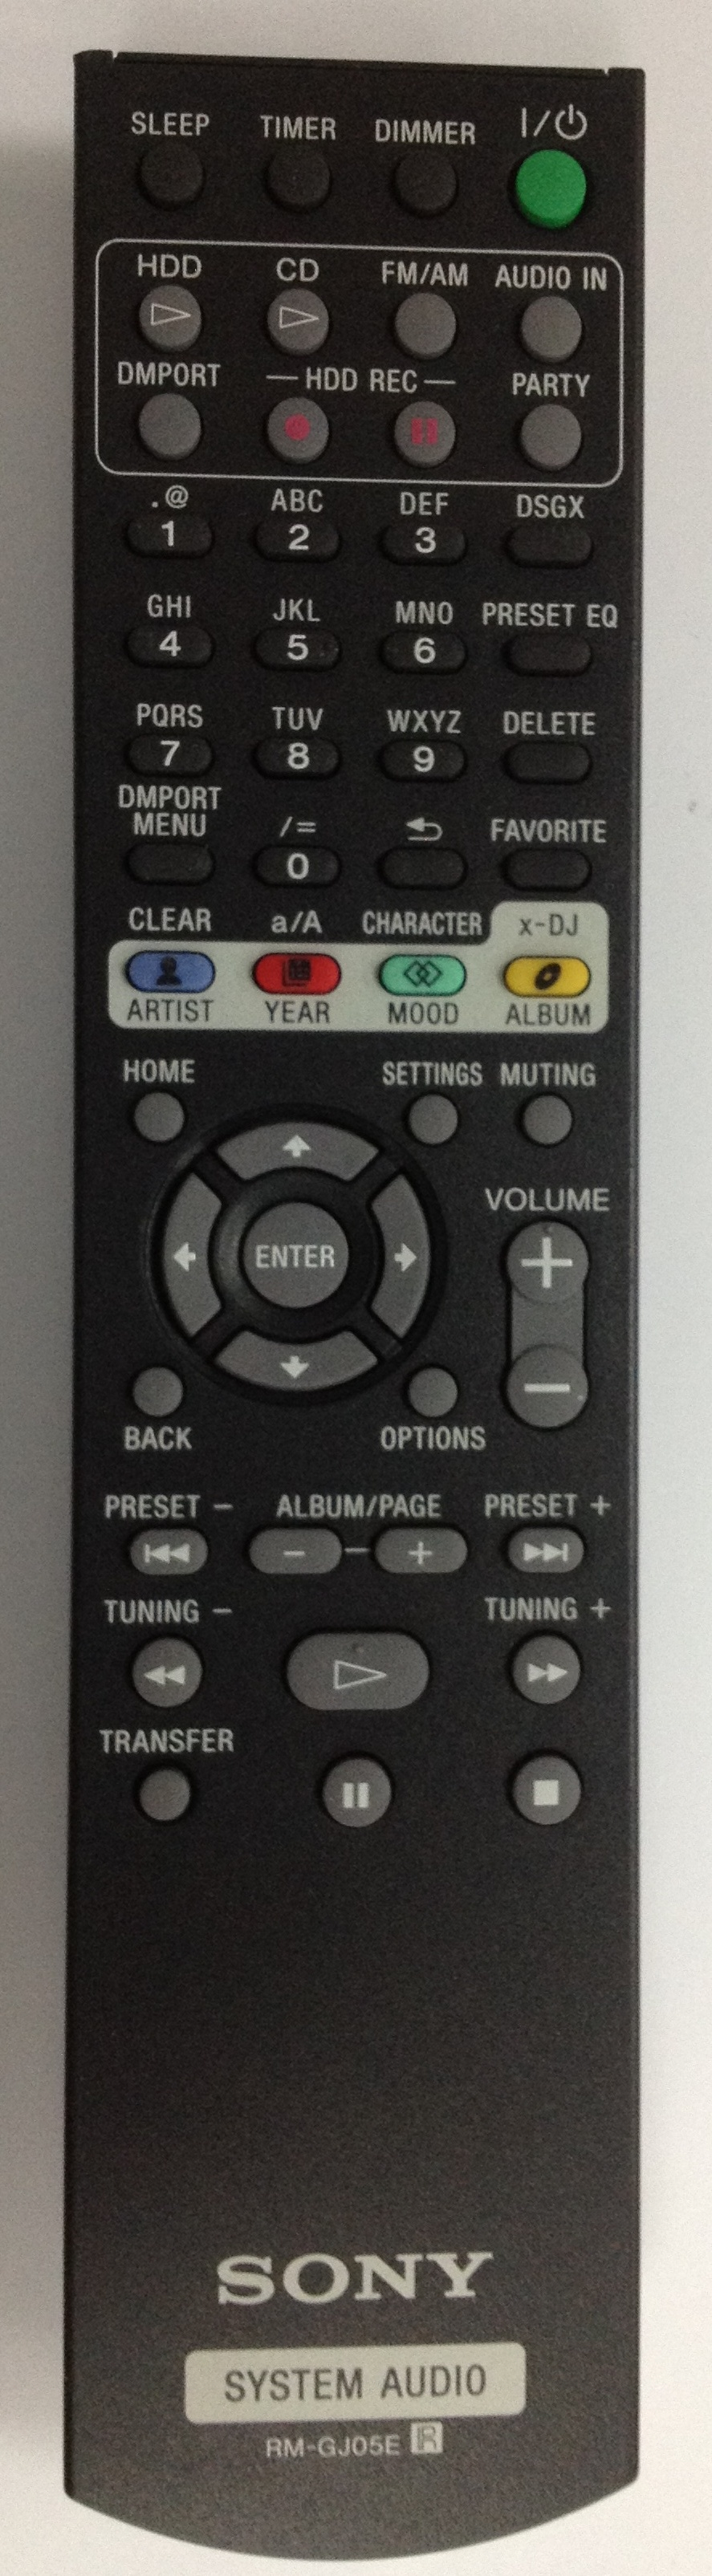 RM-GJ05E SONY Original remote control . We Offer original ...